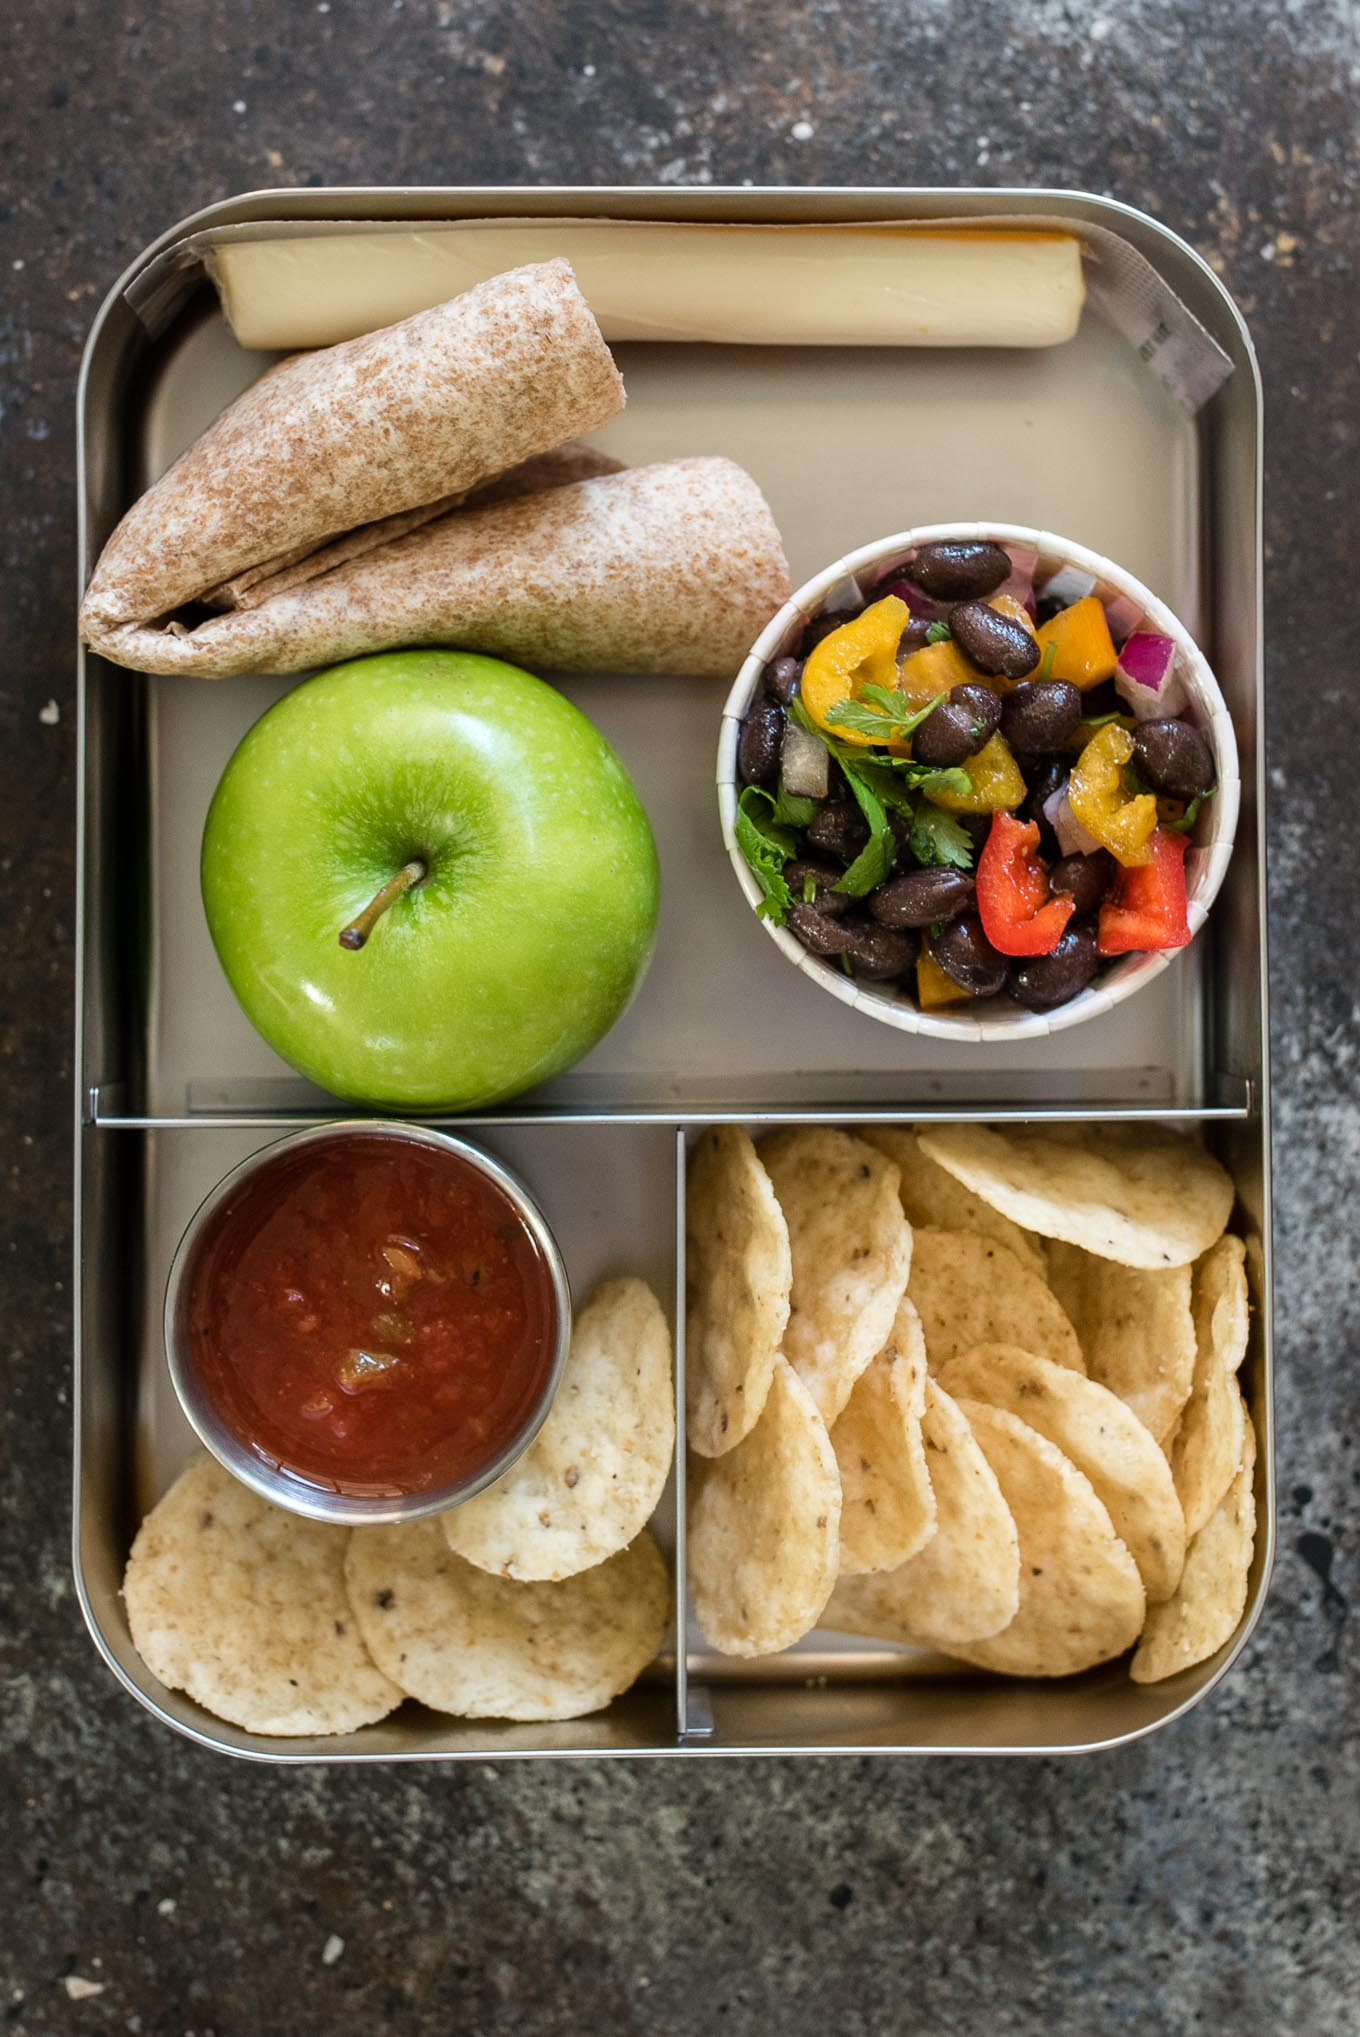 Enjoy these 10 nutritious, well-balanced, kid (and adult) friendly lunch box ideas that will inspire you to get packing! Plus a fun Pancake Sandwich recipe that your kids will love.